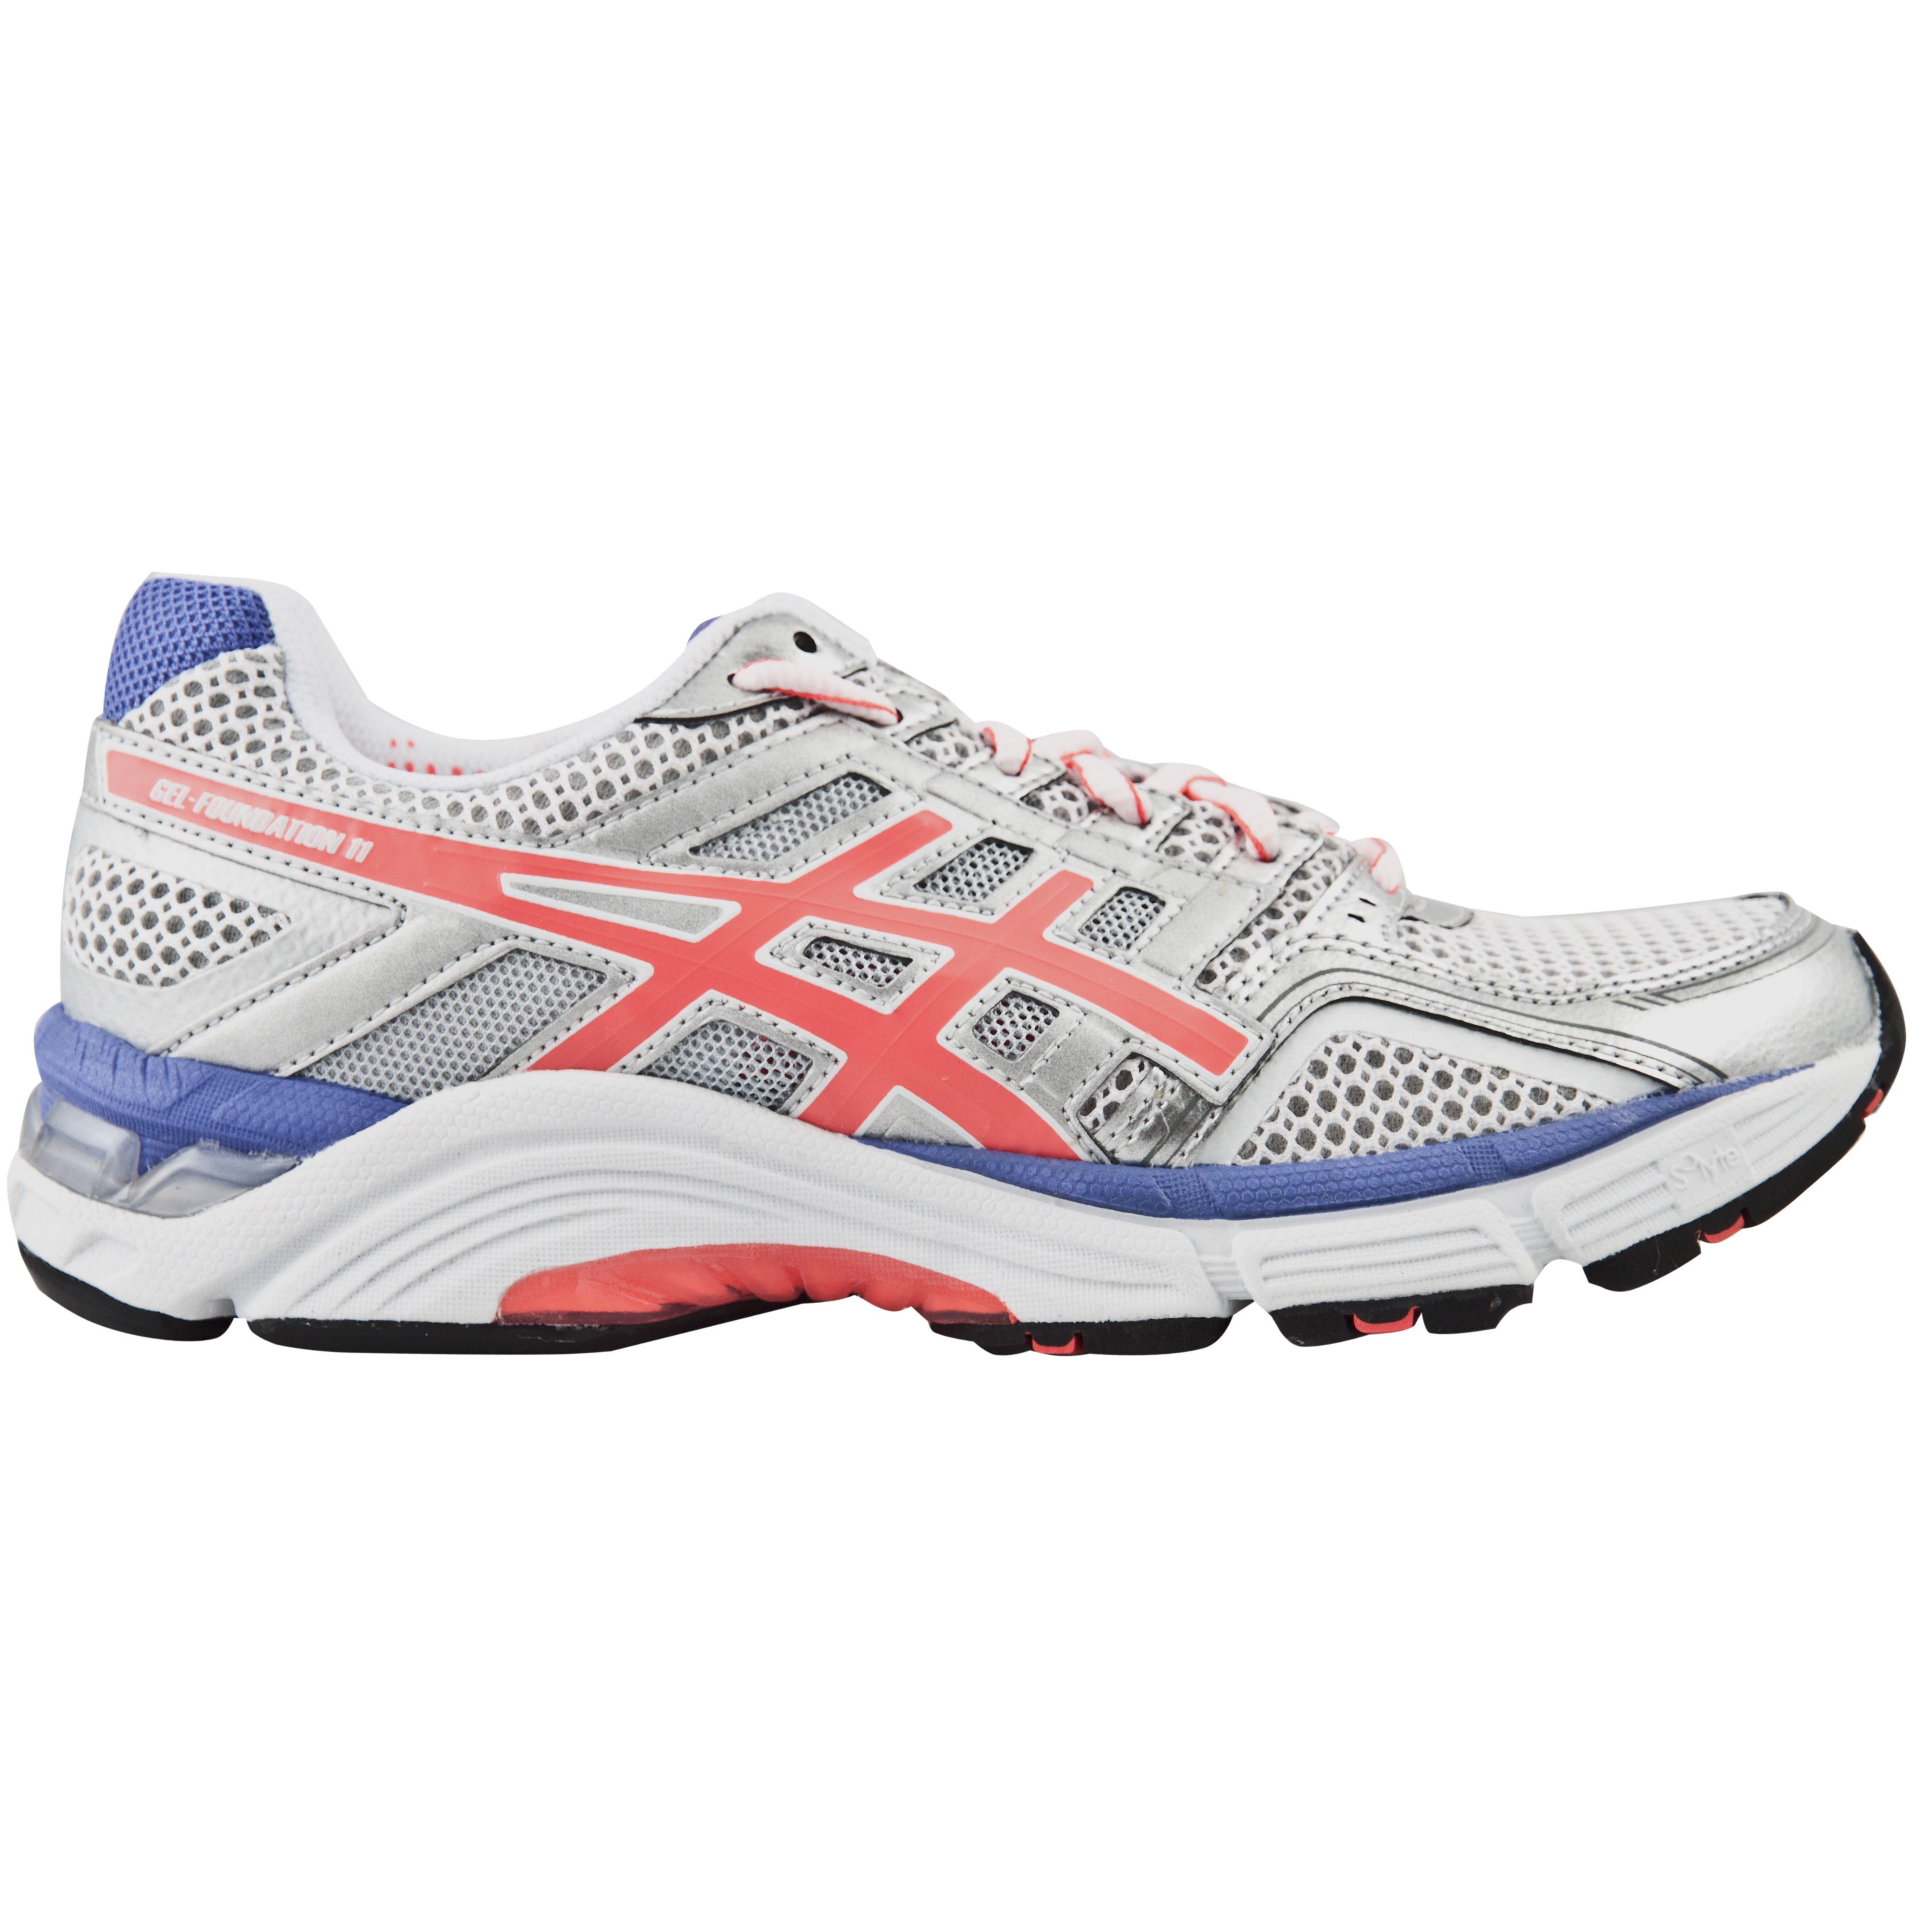 The Asics Gel Foundation 11 Women's Running Shoe. In Silver